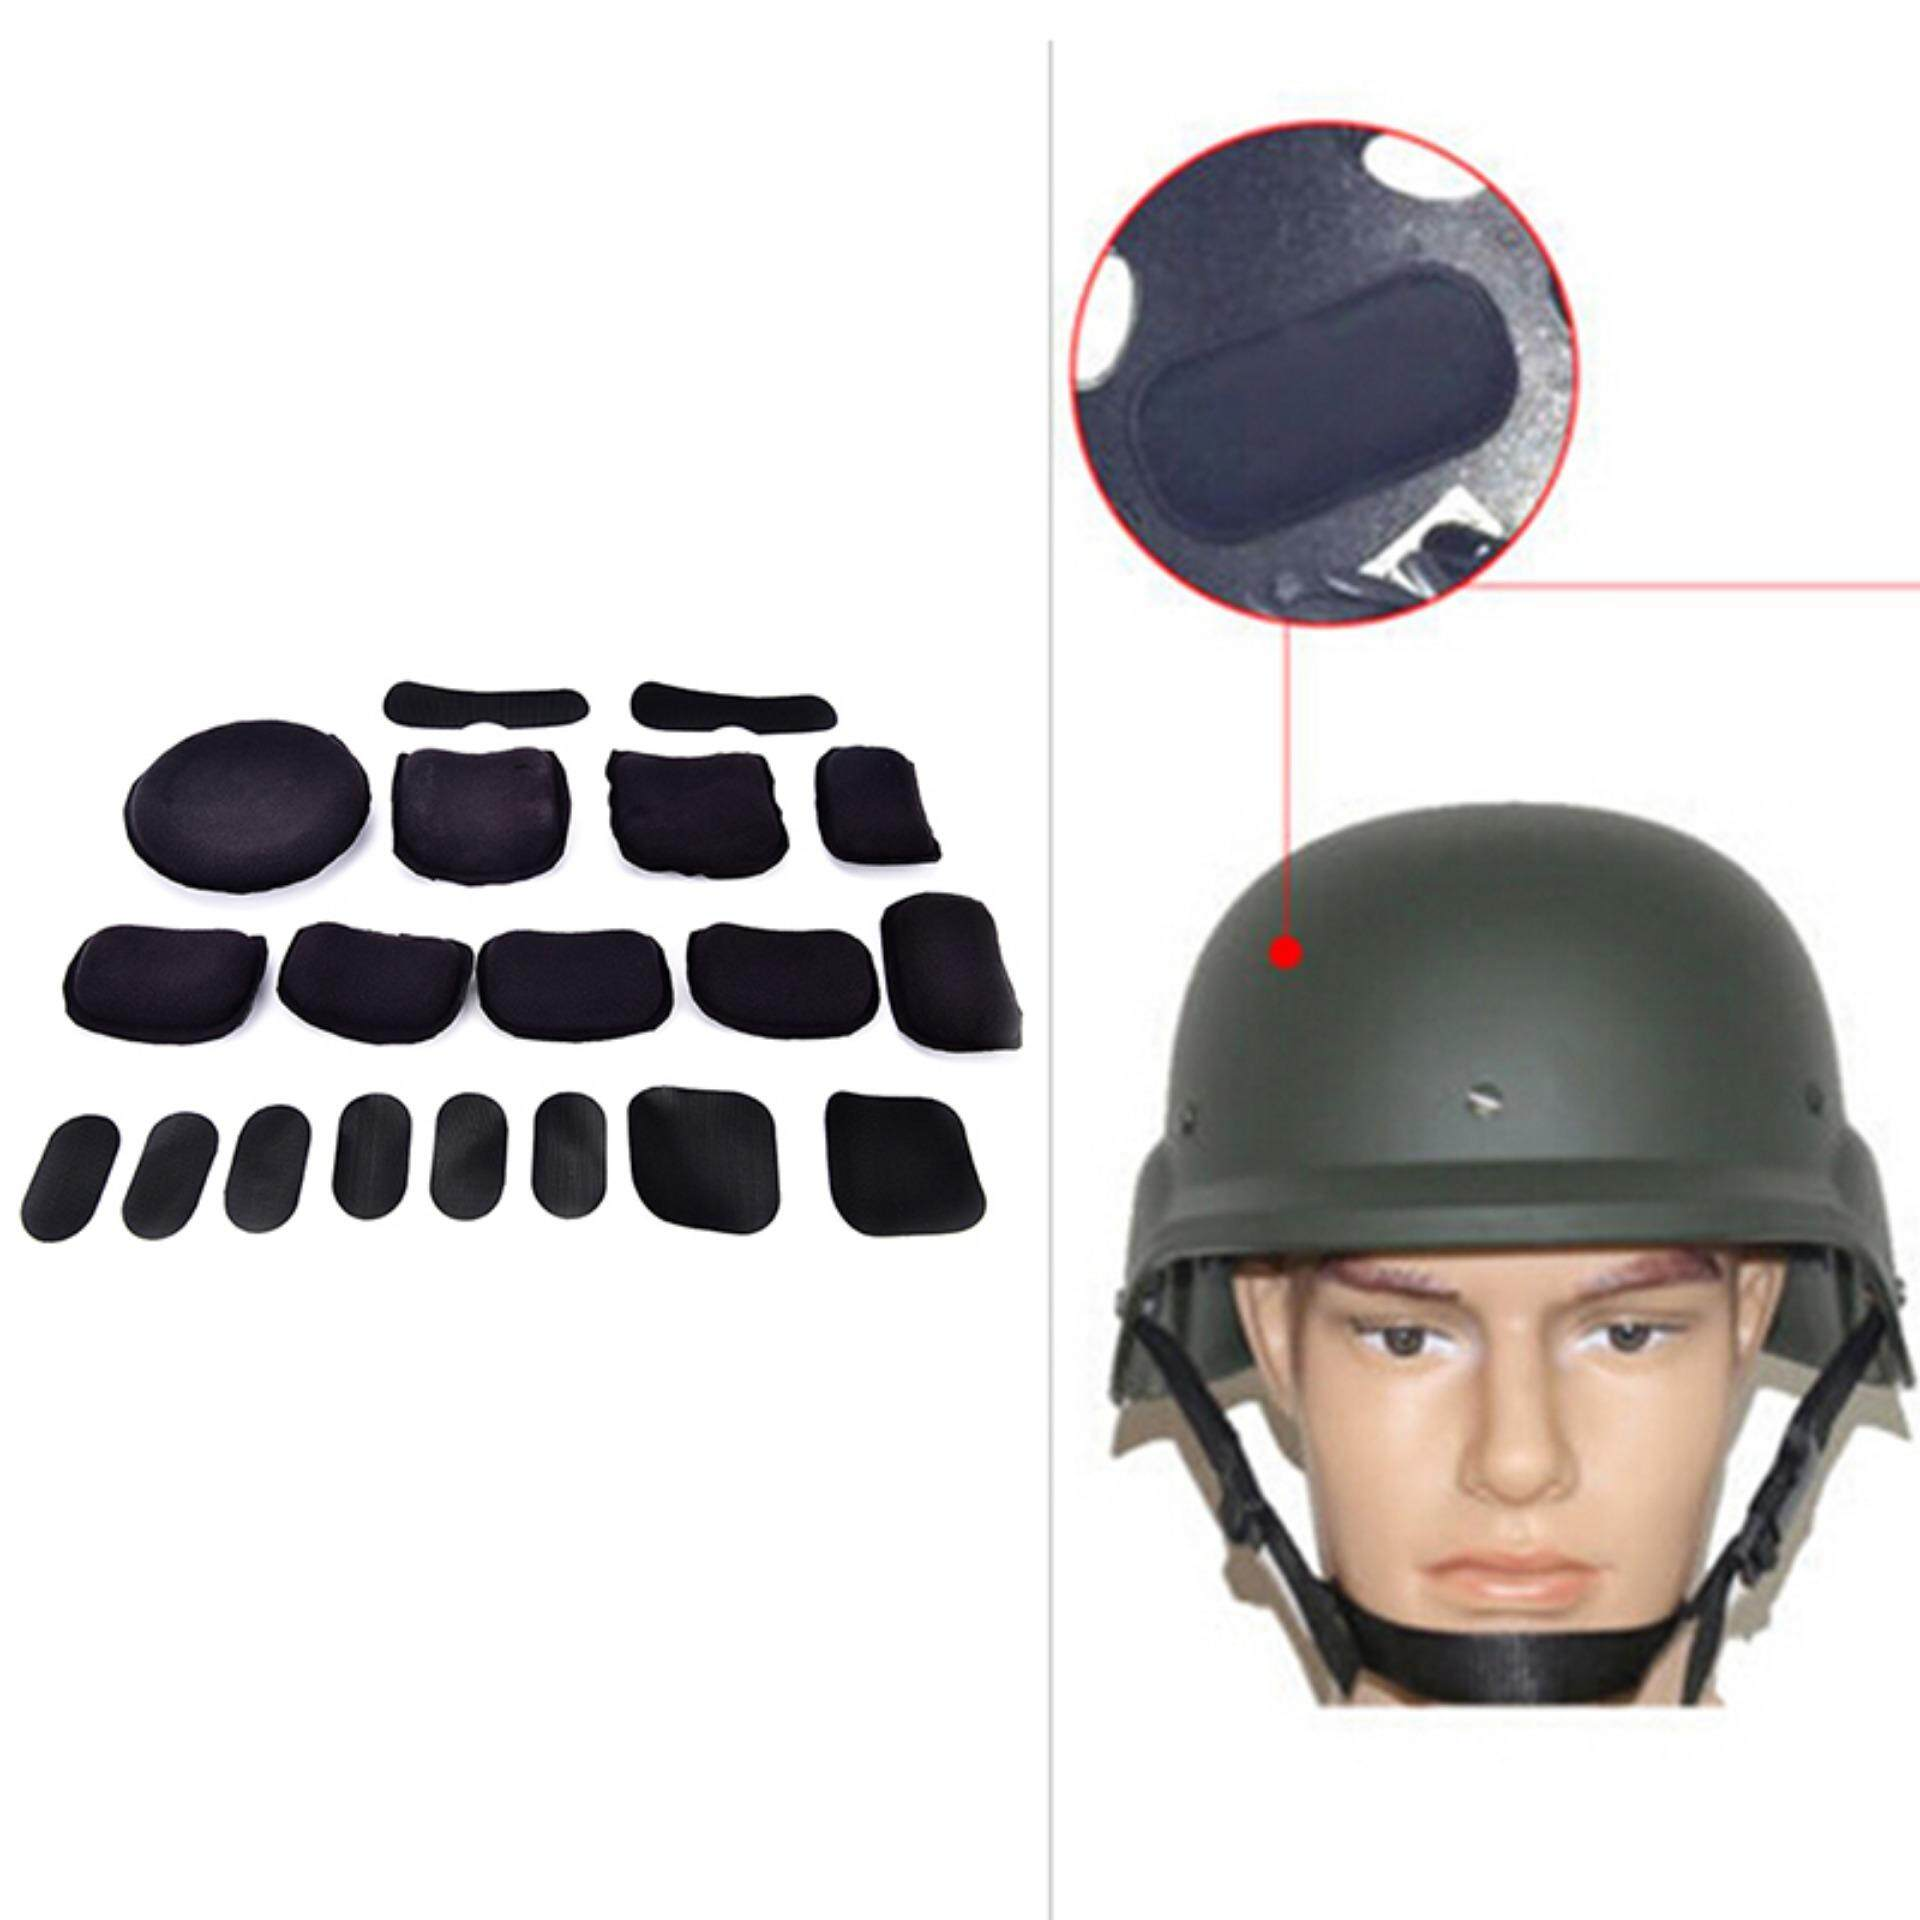 Veli Shy 19pcs Black Eva Foam Pad Cushion For Tactical Airsoft Military Cycling Helmet By Veli Shy.